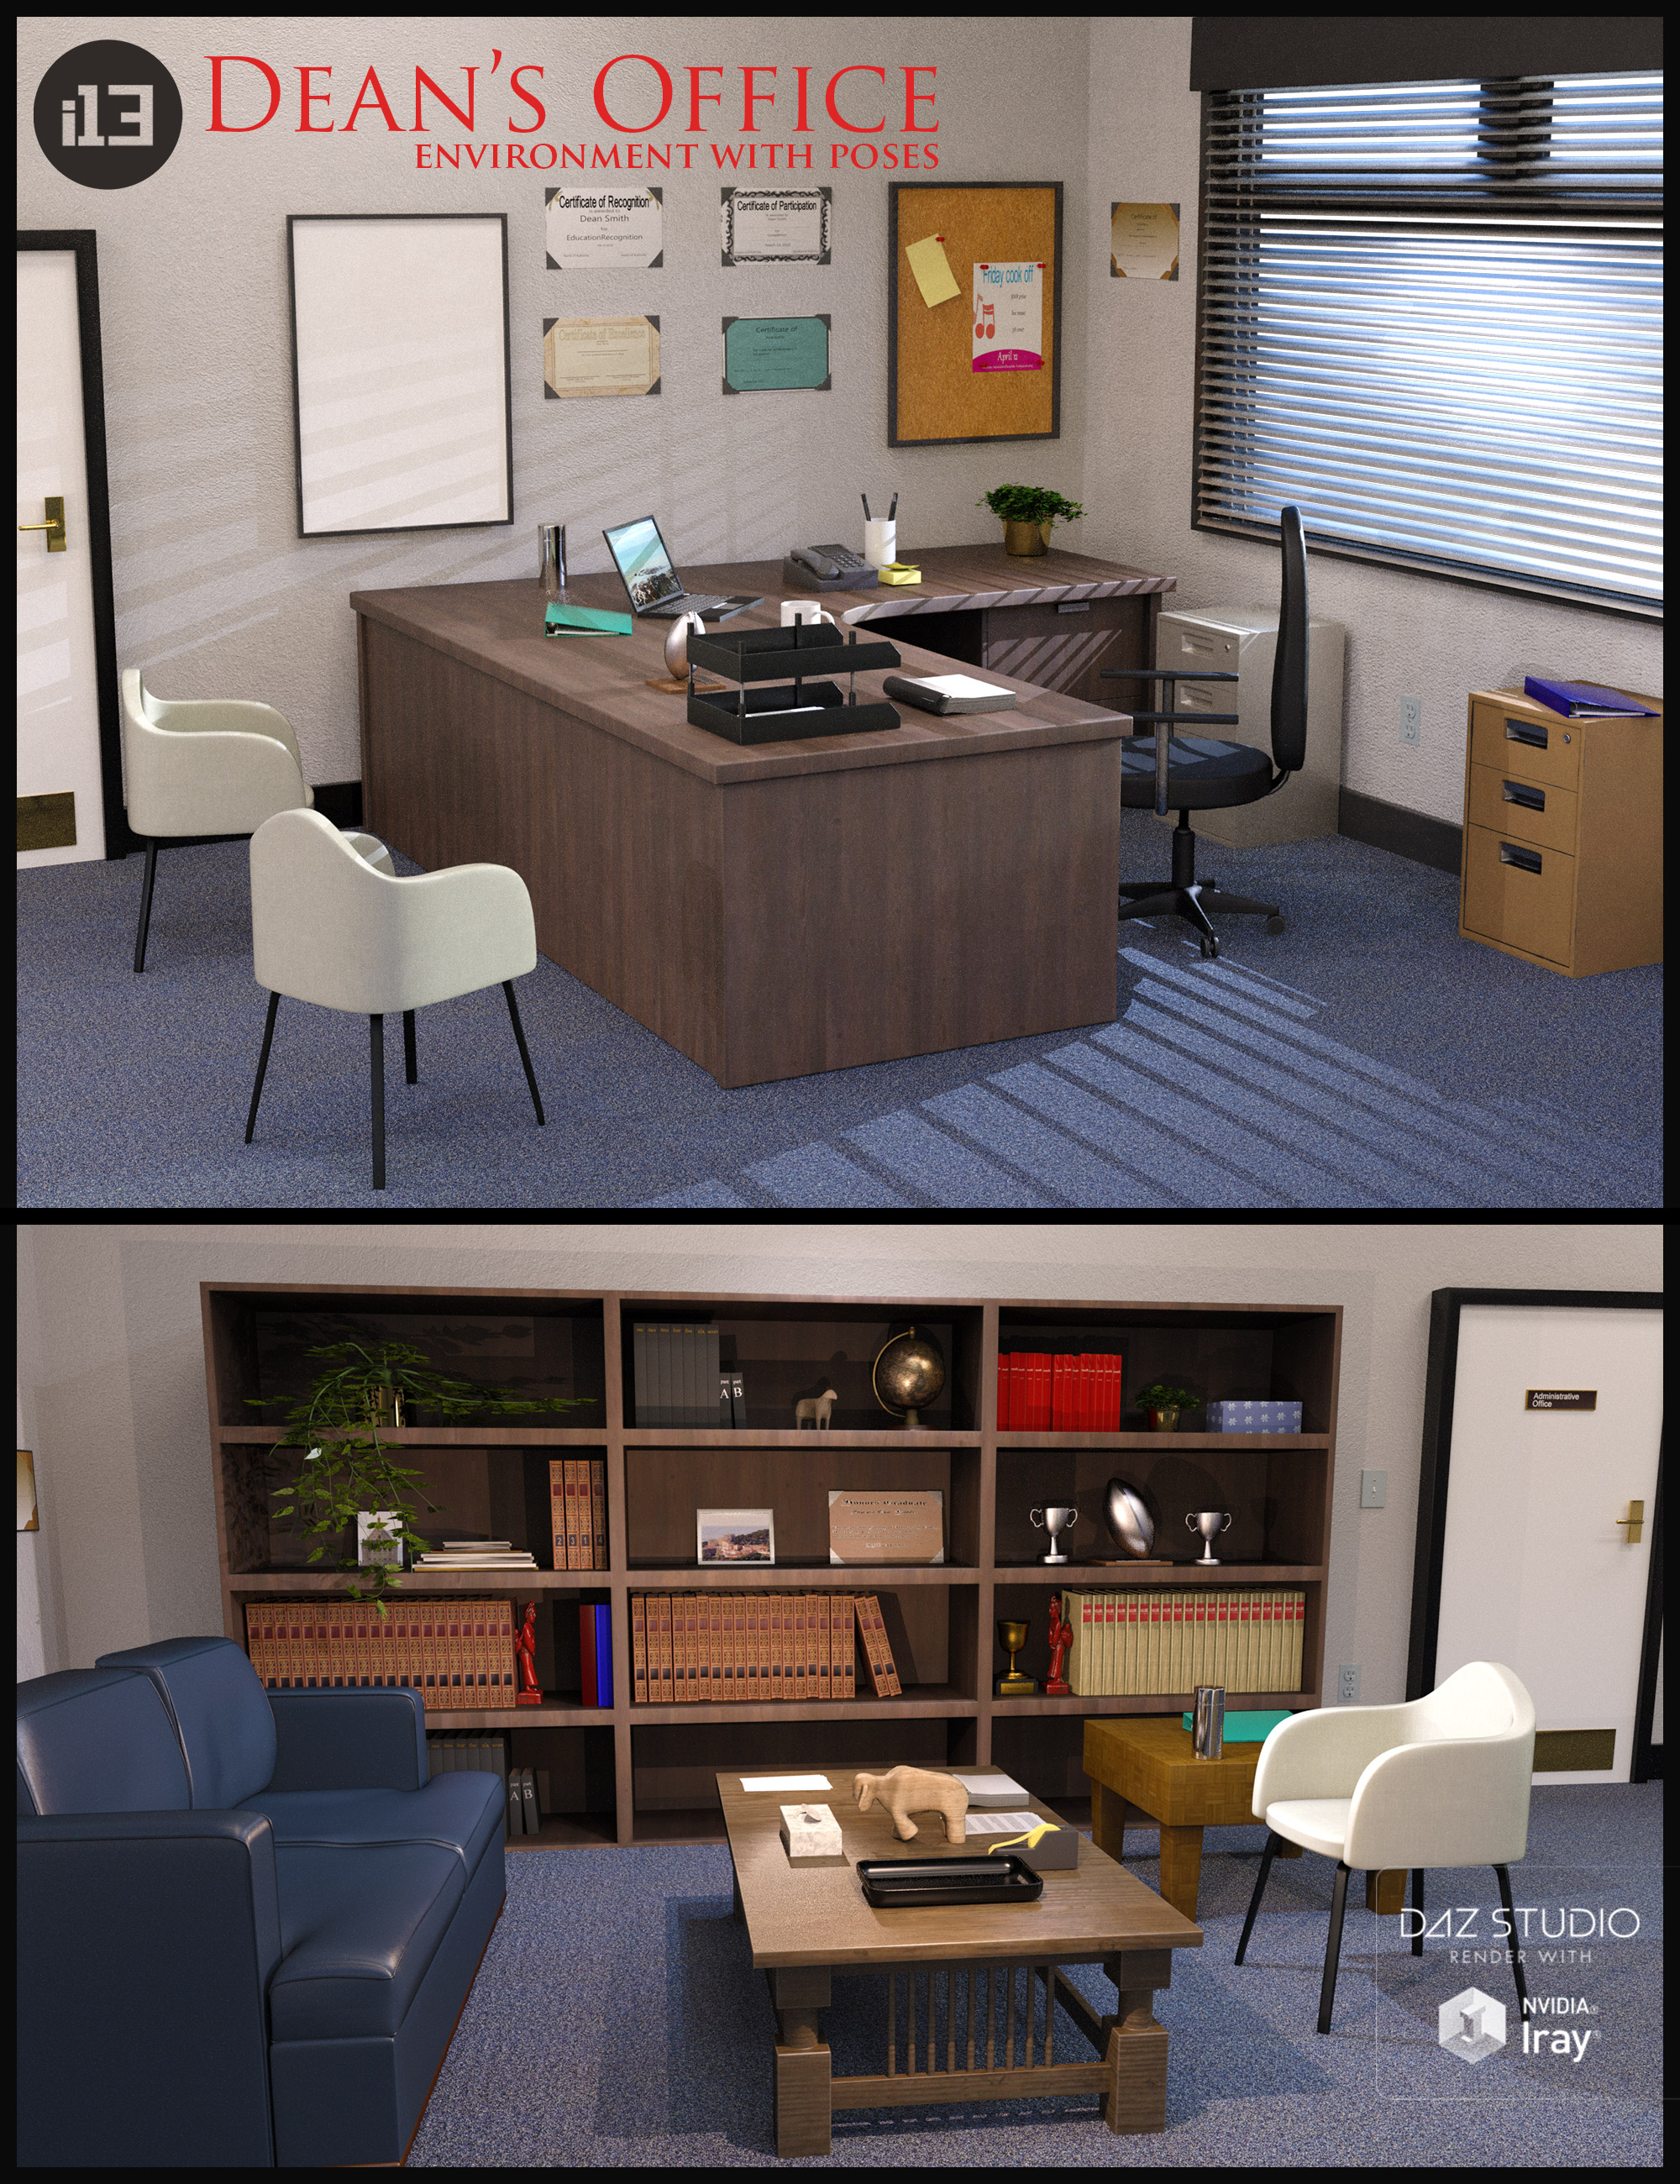 i13 Dean's Office with Poses by: ironman13, 3D Models by Daz 3D